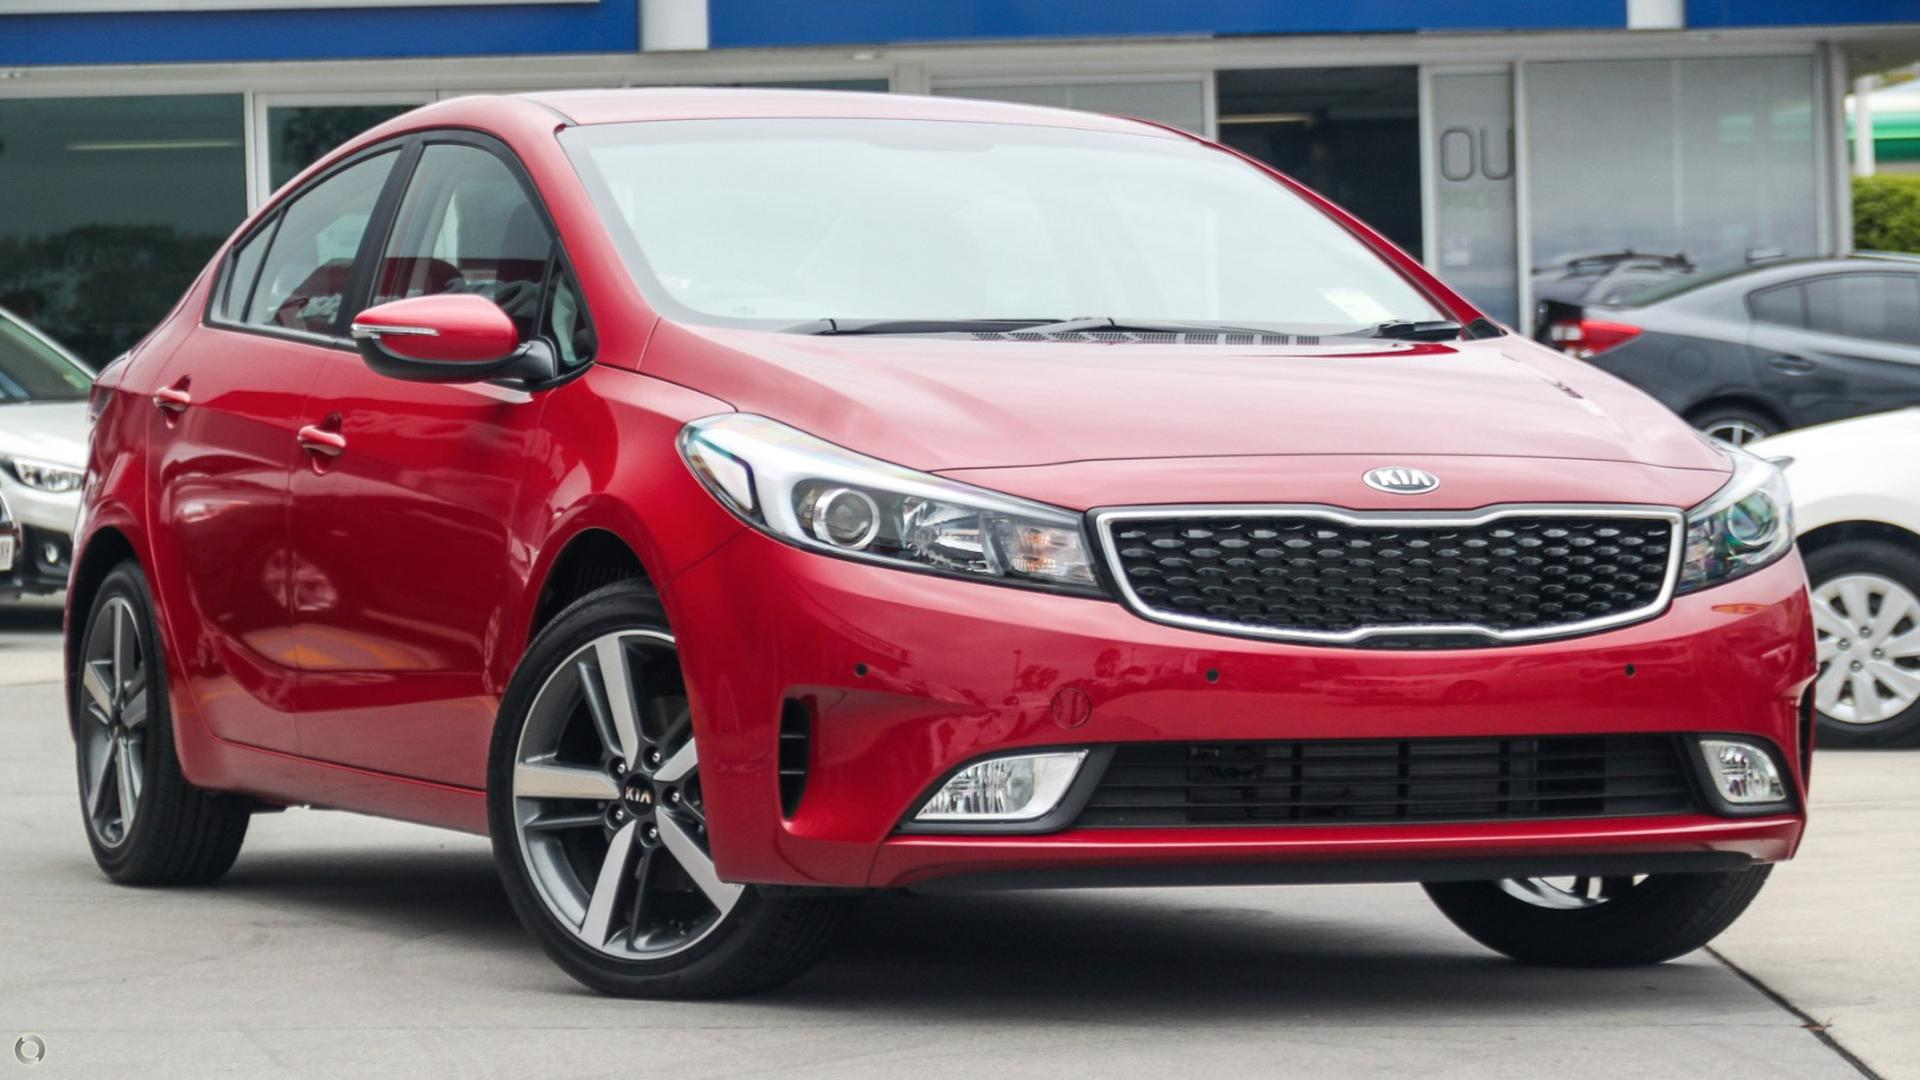 2017 Kia Cerato Sport Yd Berwick Motor Group HD Style Wallpapers Download free beautiful images and photos HD [prarshipsa.tk]